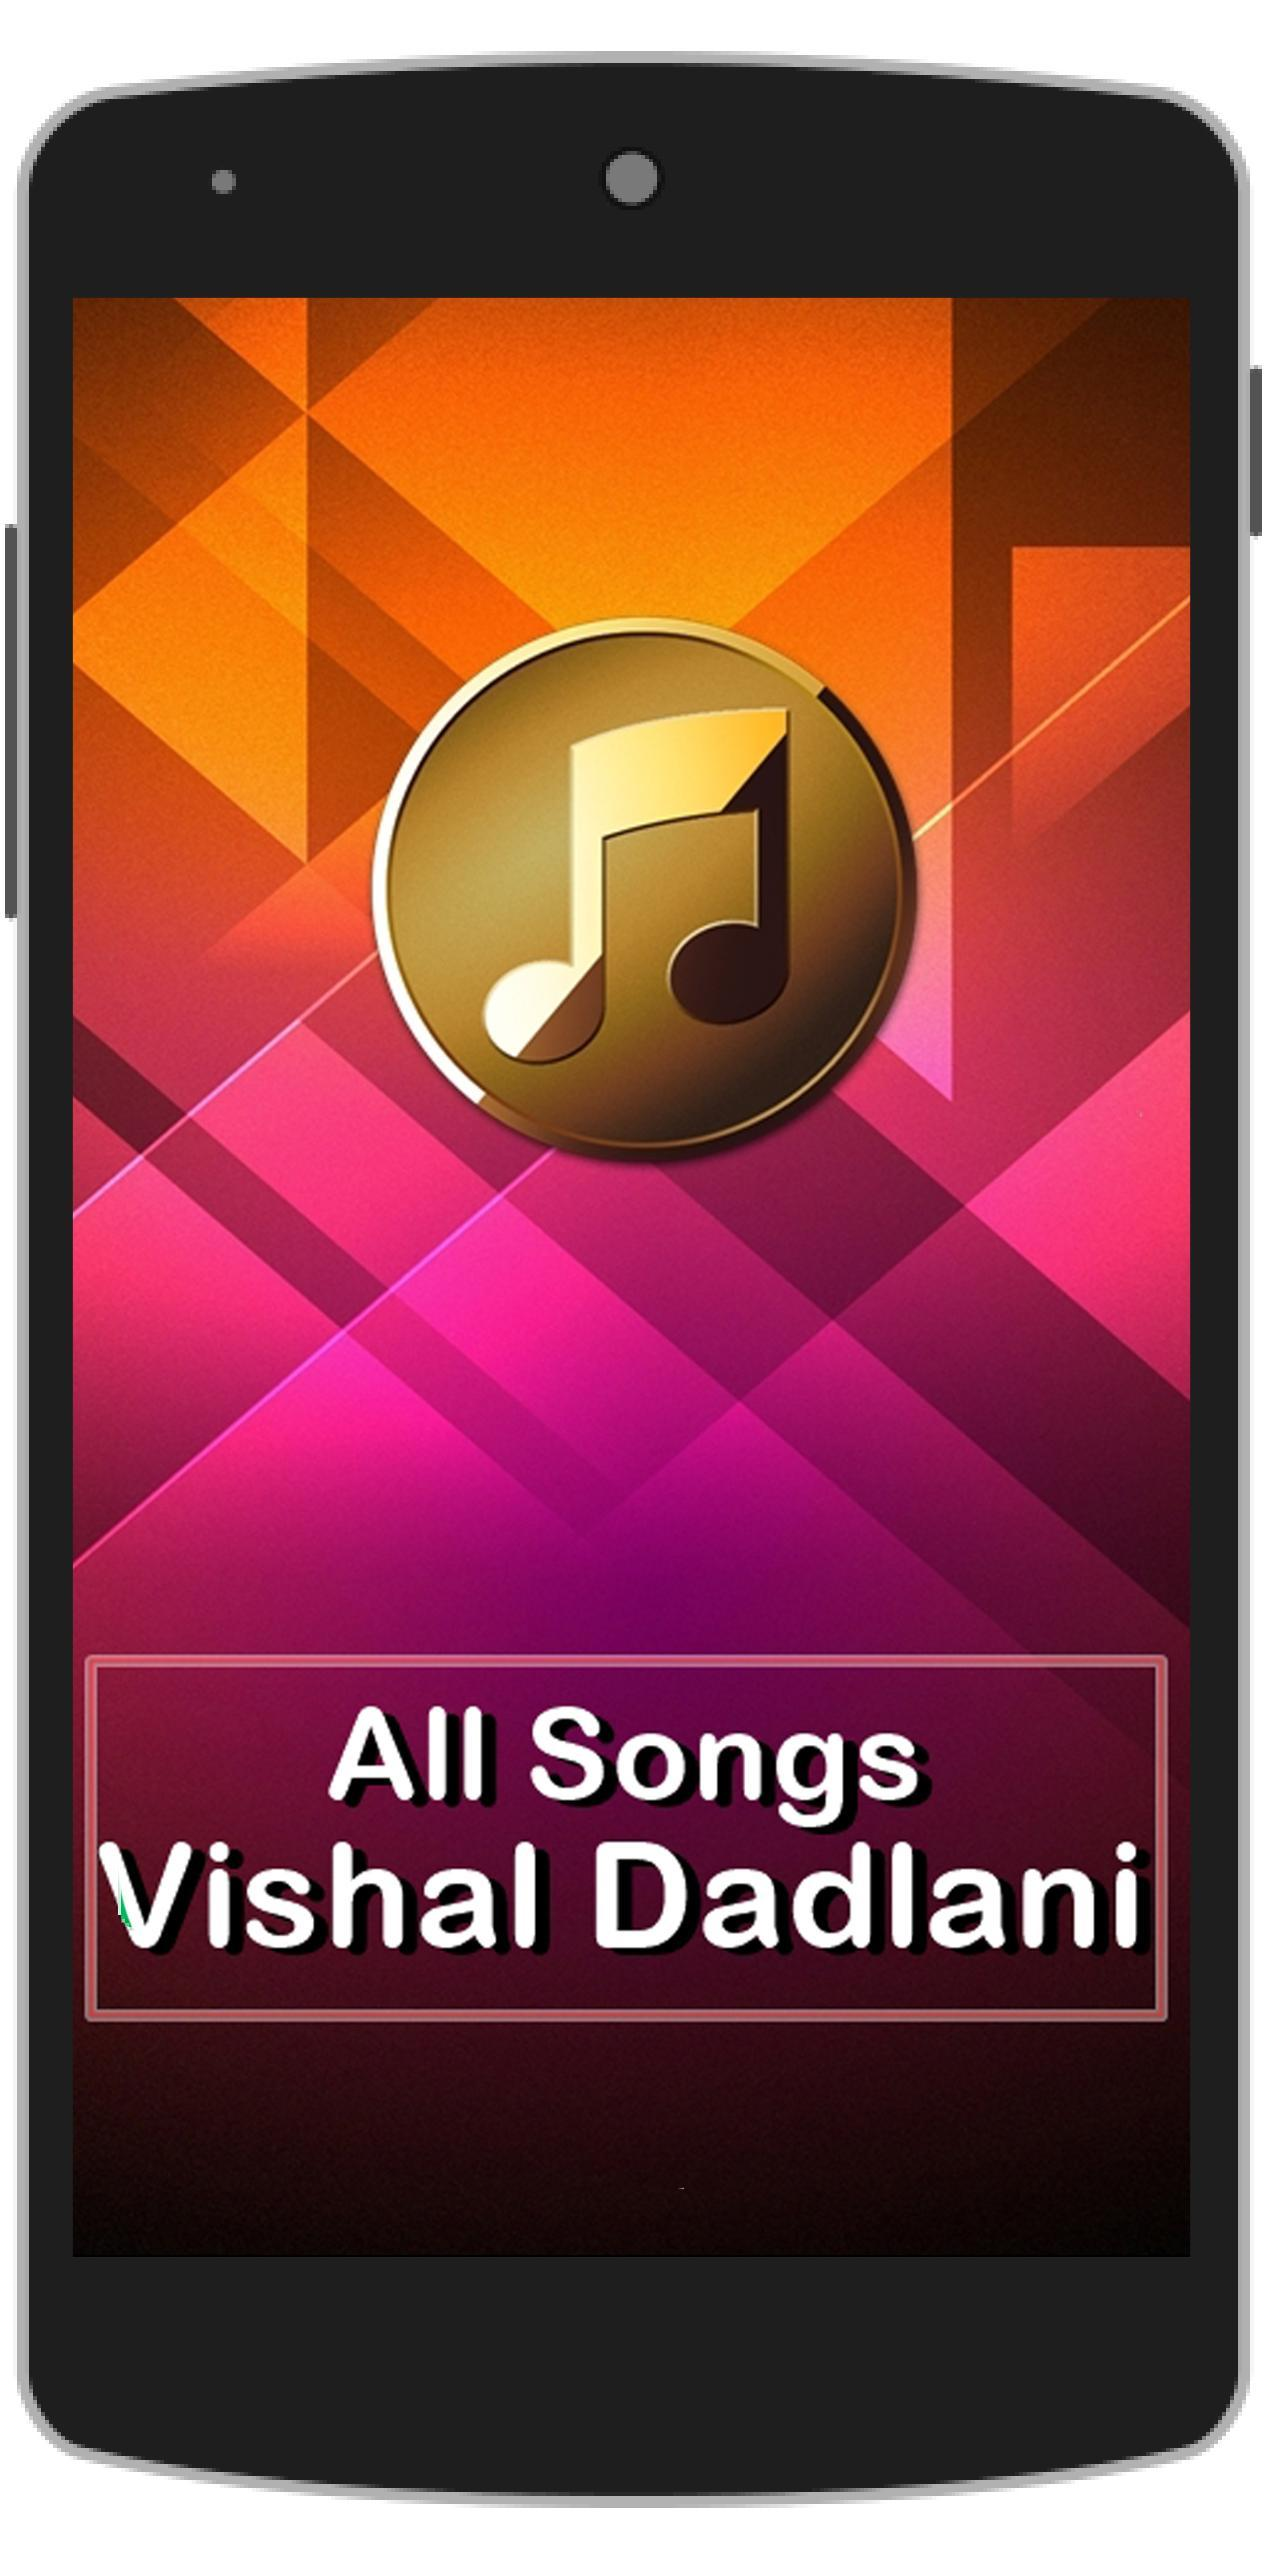 All Songs Vishal Dadlani For Android Apk Download